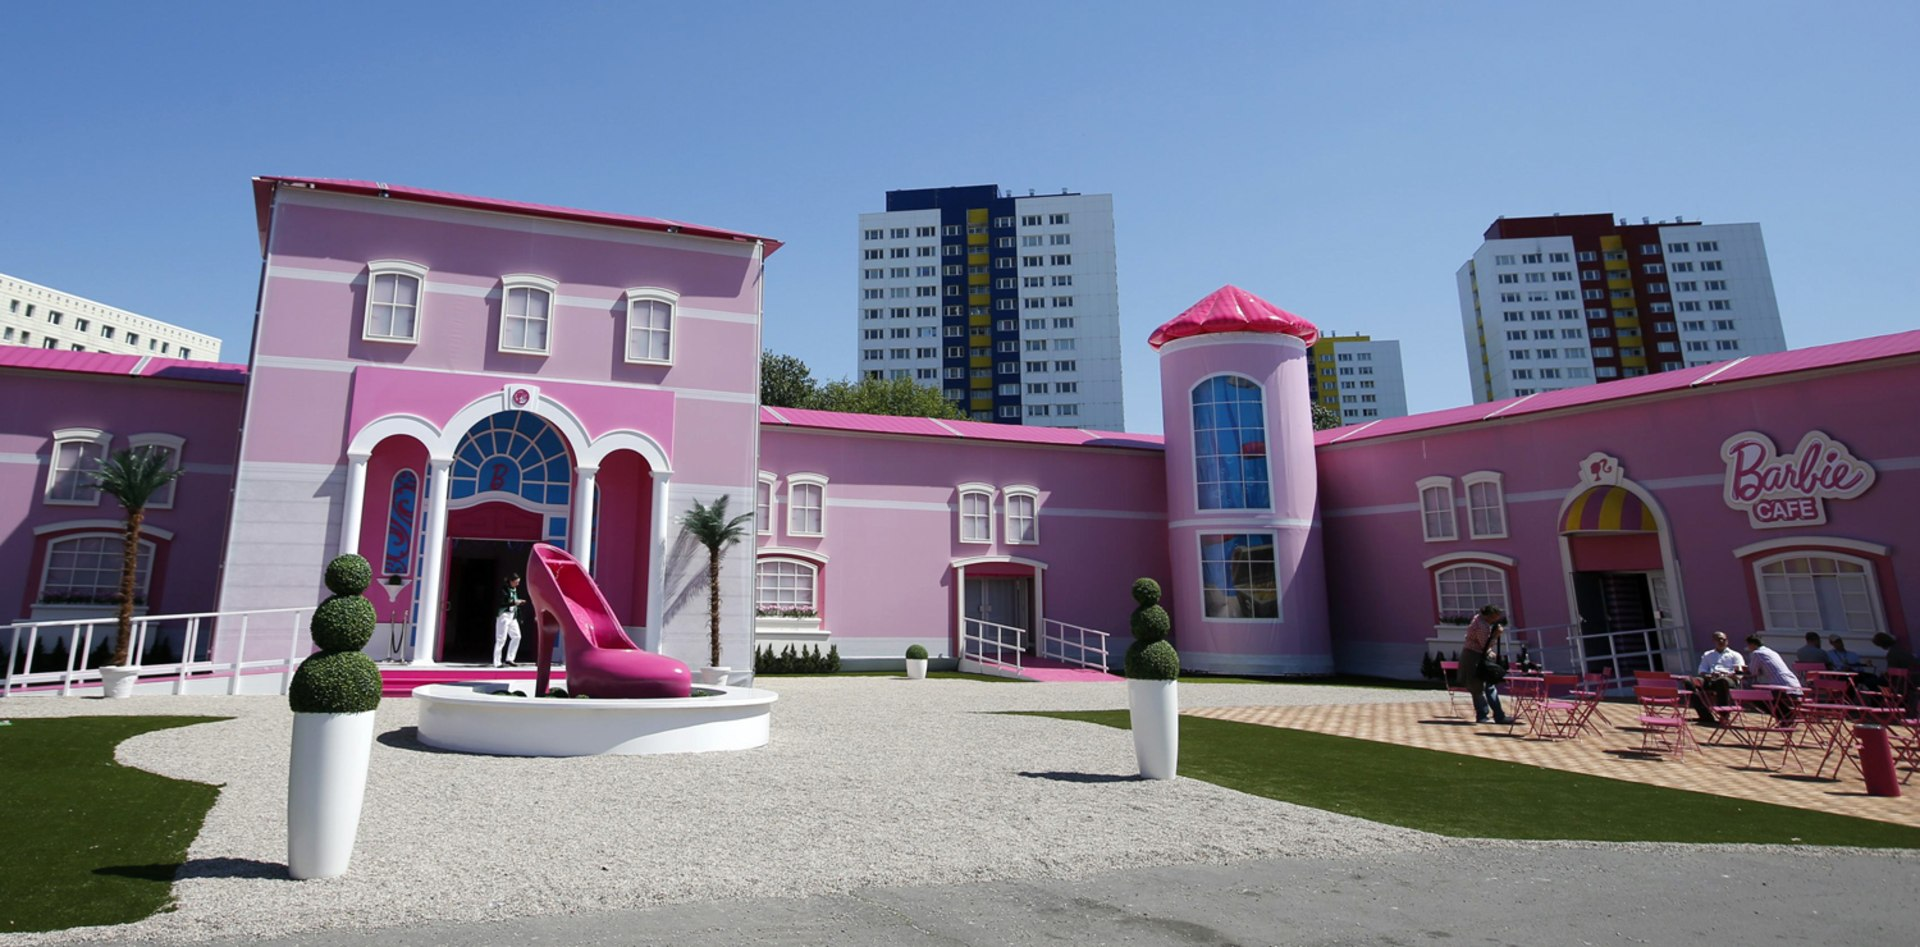 Barbie 39 s dreamhouse now life size reality in florida for My dream house photo gallery